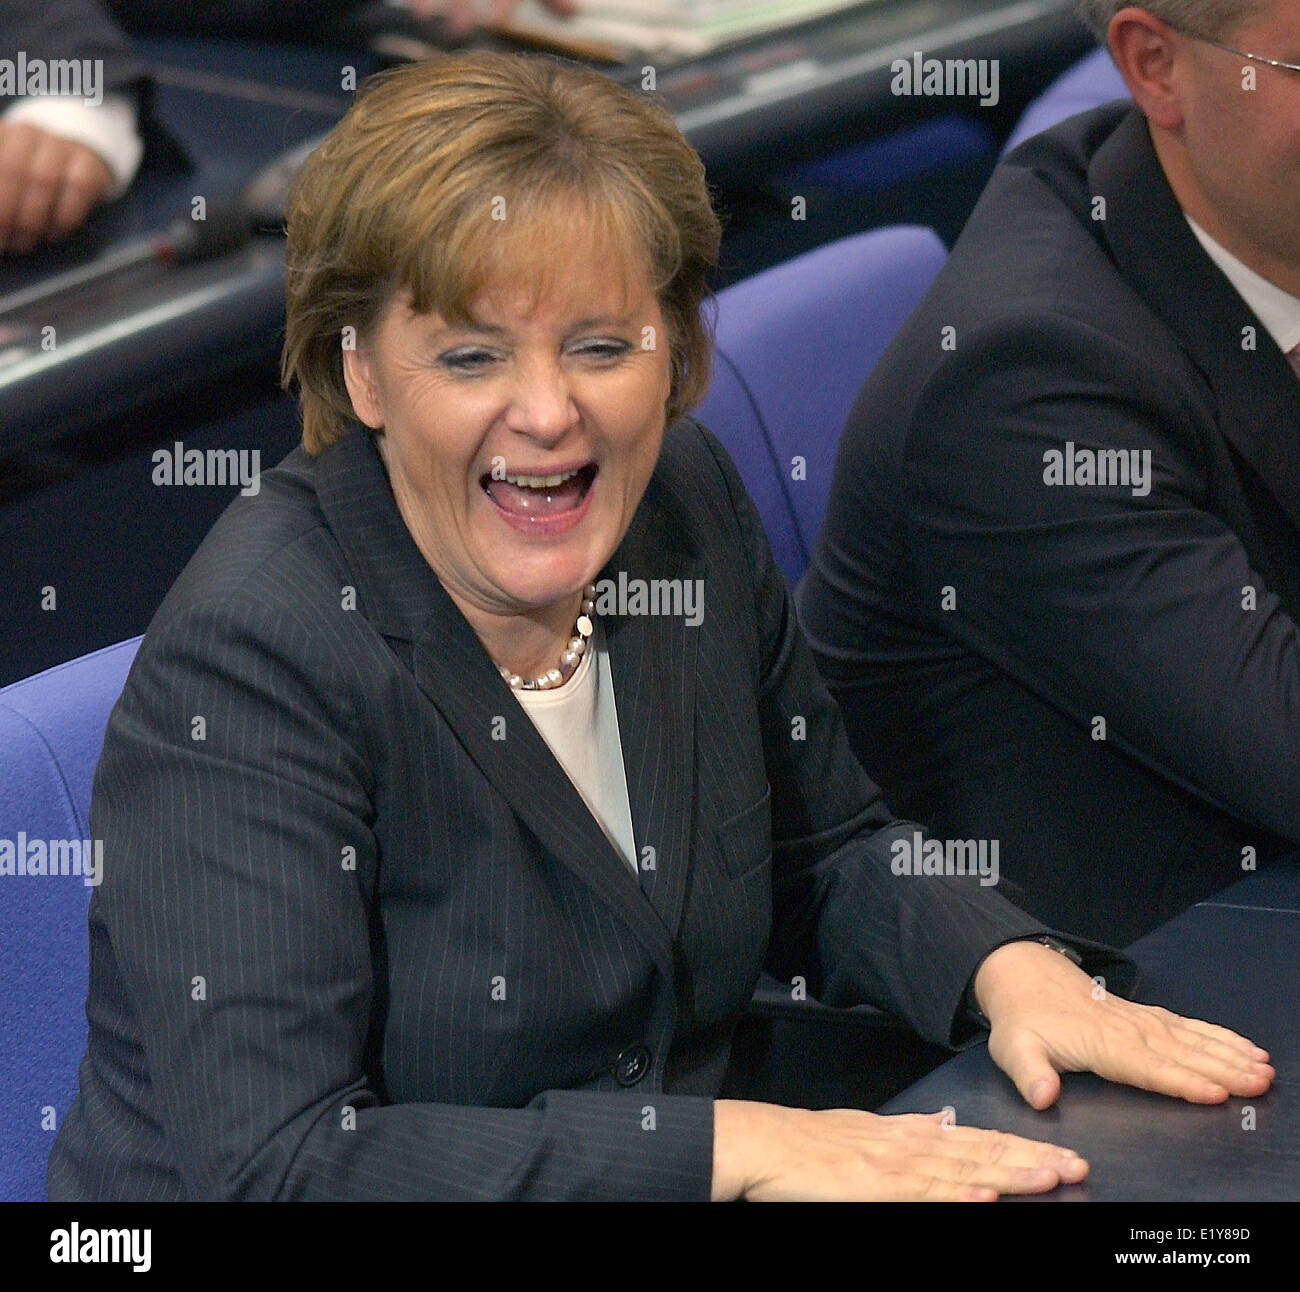 Chancellor and CDU chairwoman Angela Merkel laughs out loudly on the occasion of Norber Lammert's slip of tongue Stock Photo